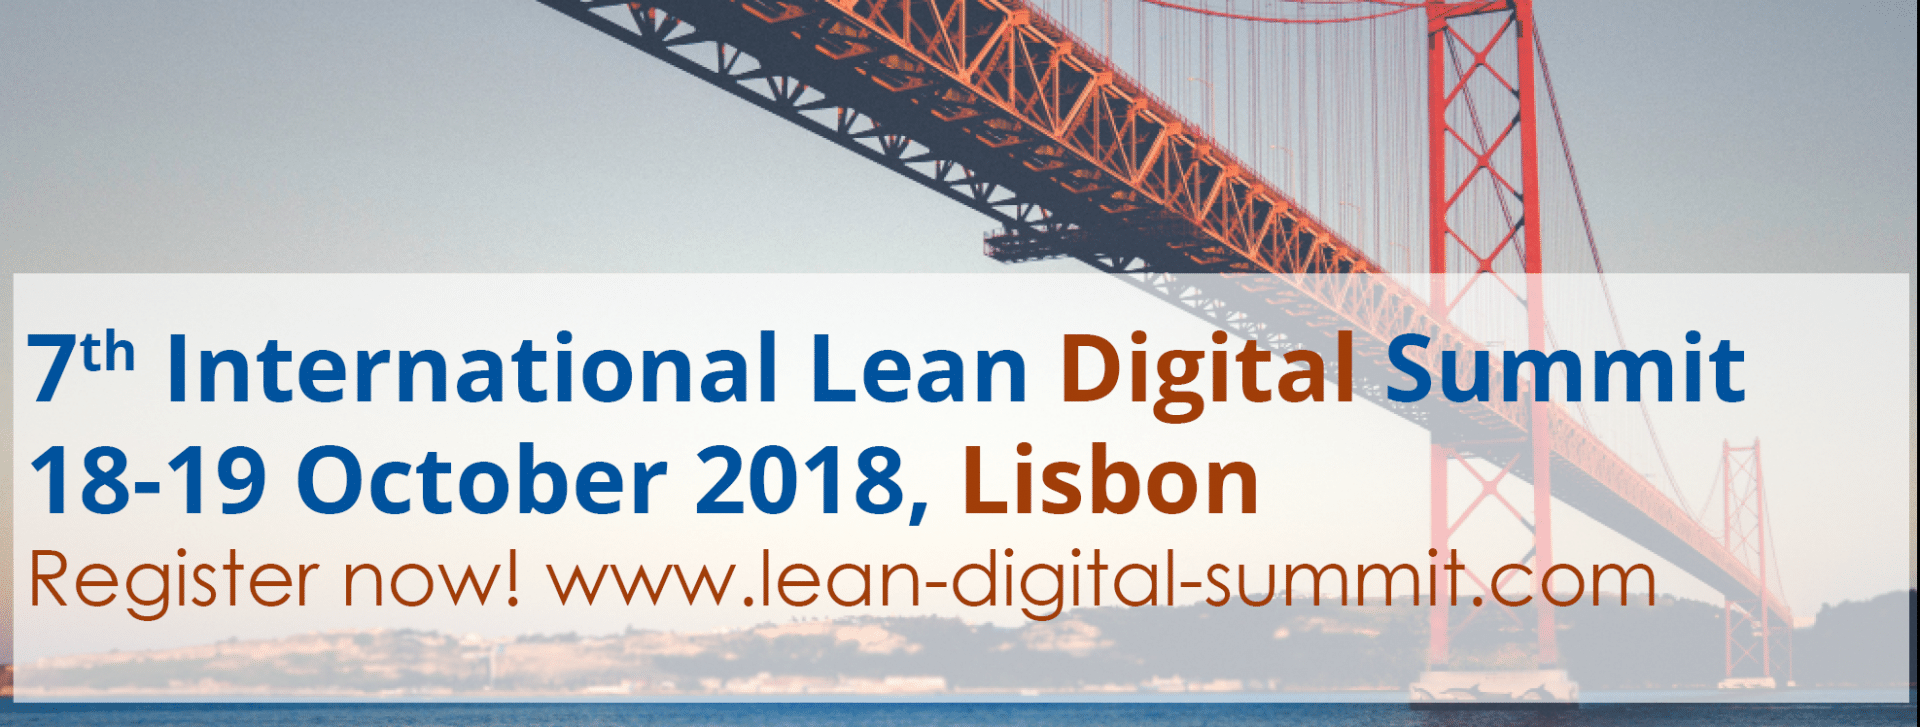 Lean Digital Summit